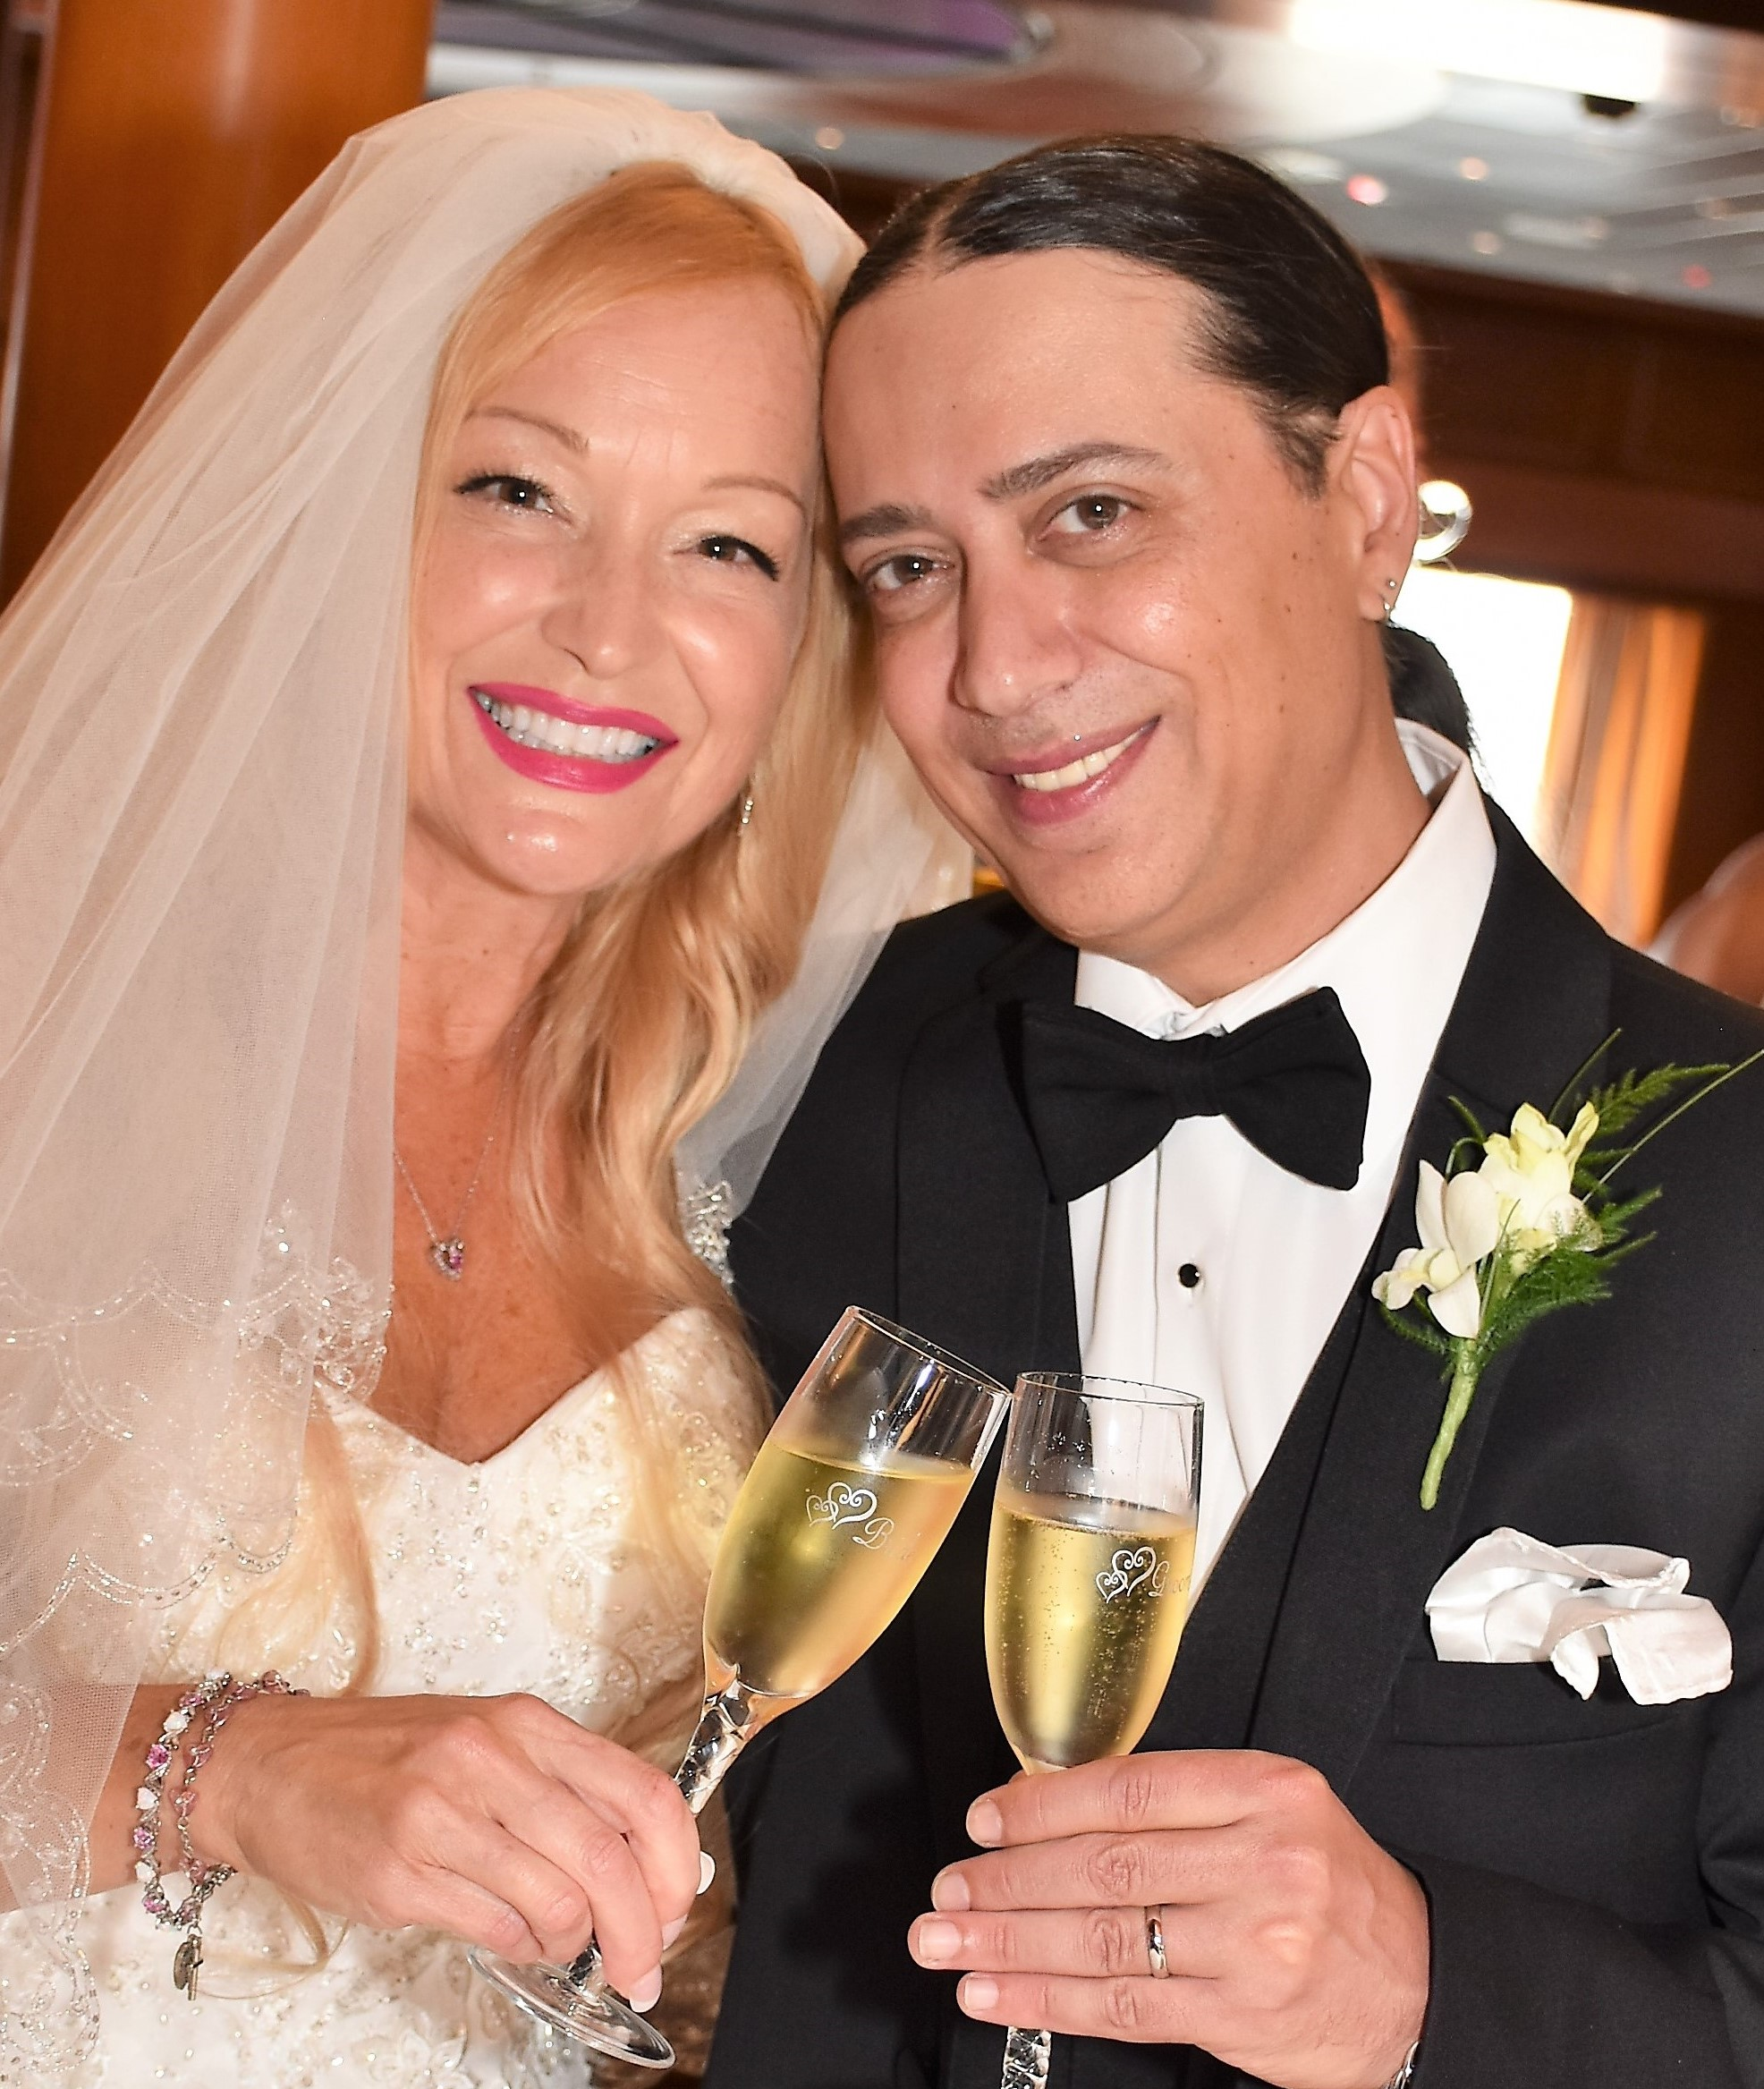 Married Michelle Valentine Got Married Aboard A Cruise Ship - Getting married on a cruise ship